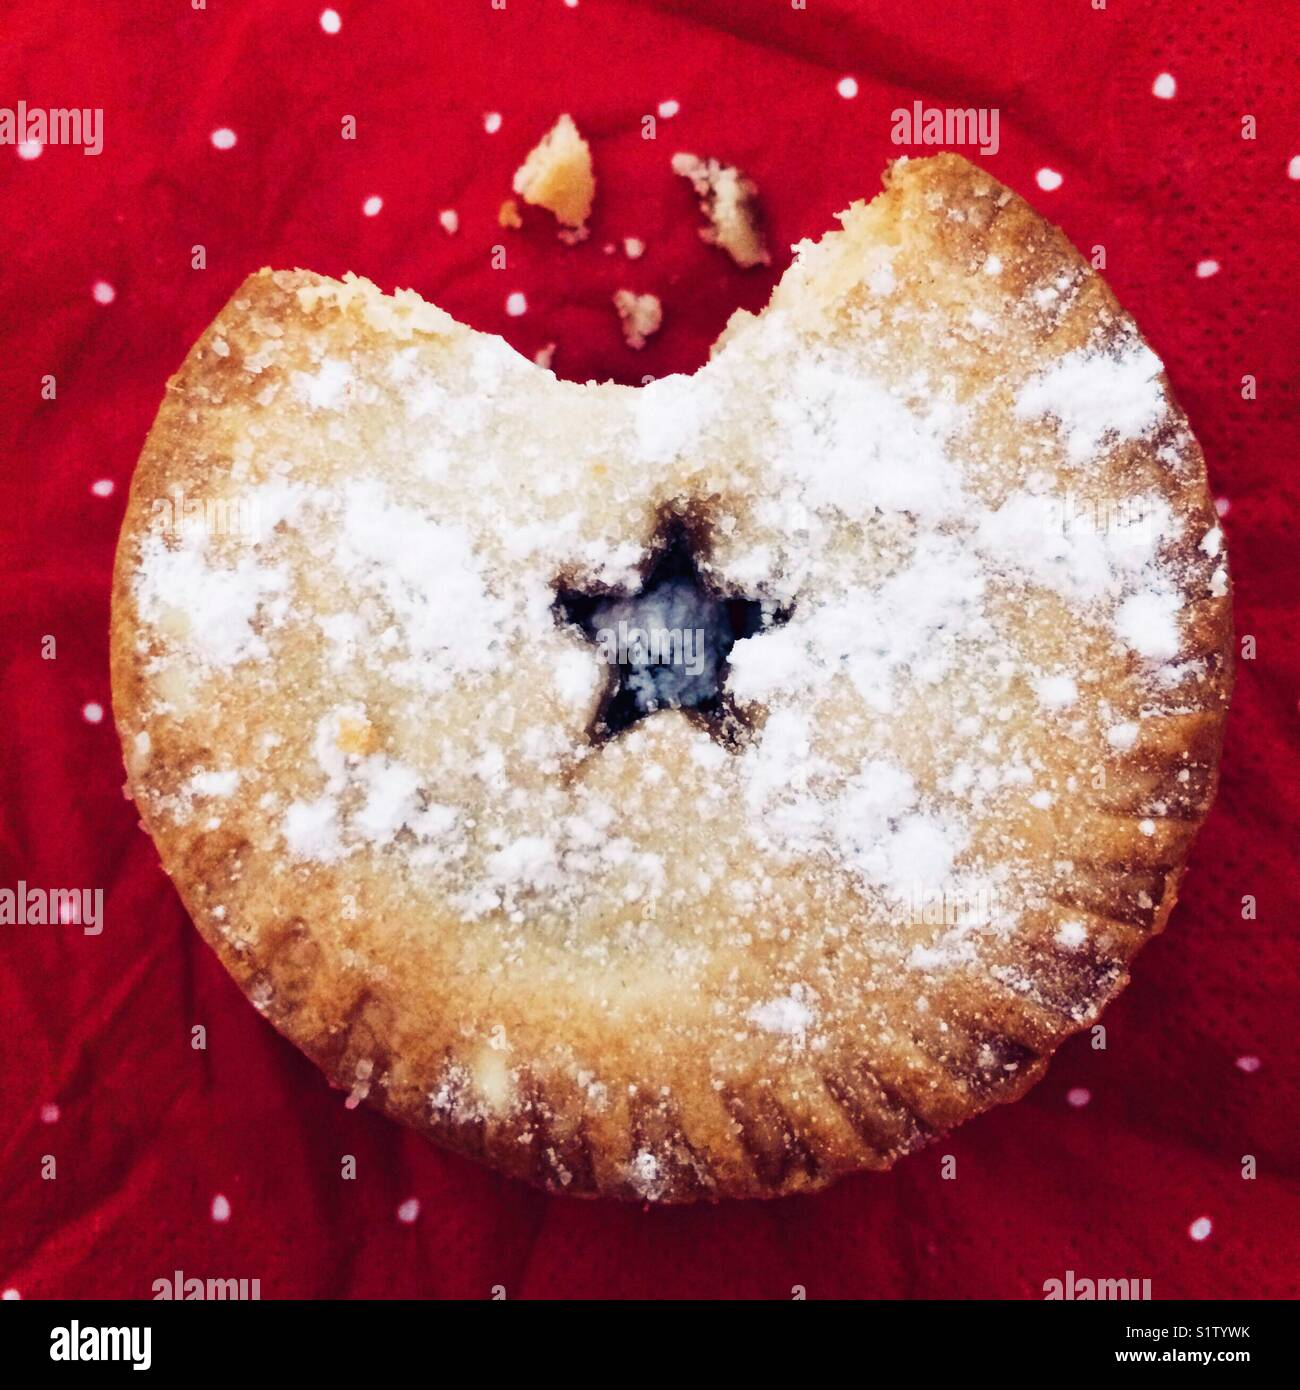 A bite taken out of a Christmas mince pie - Stock Image